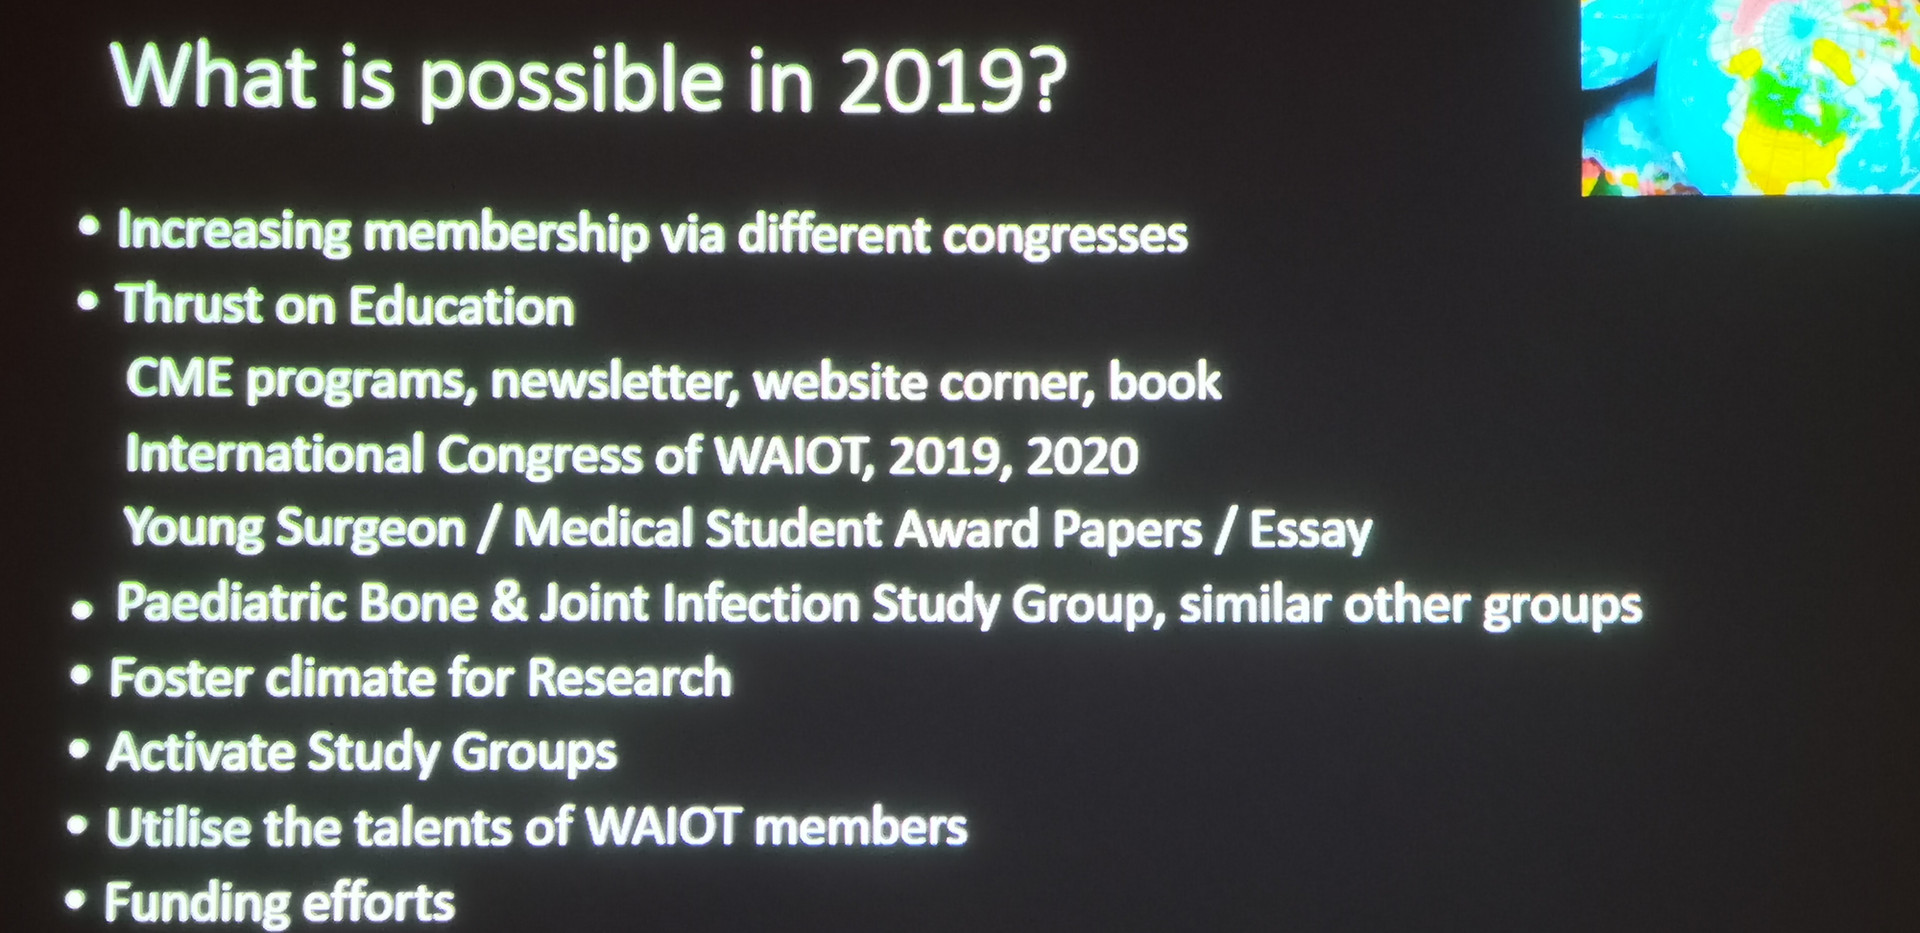 Prof. Johari's vision for WAIOT